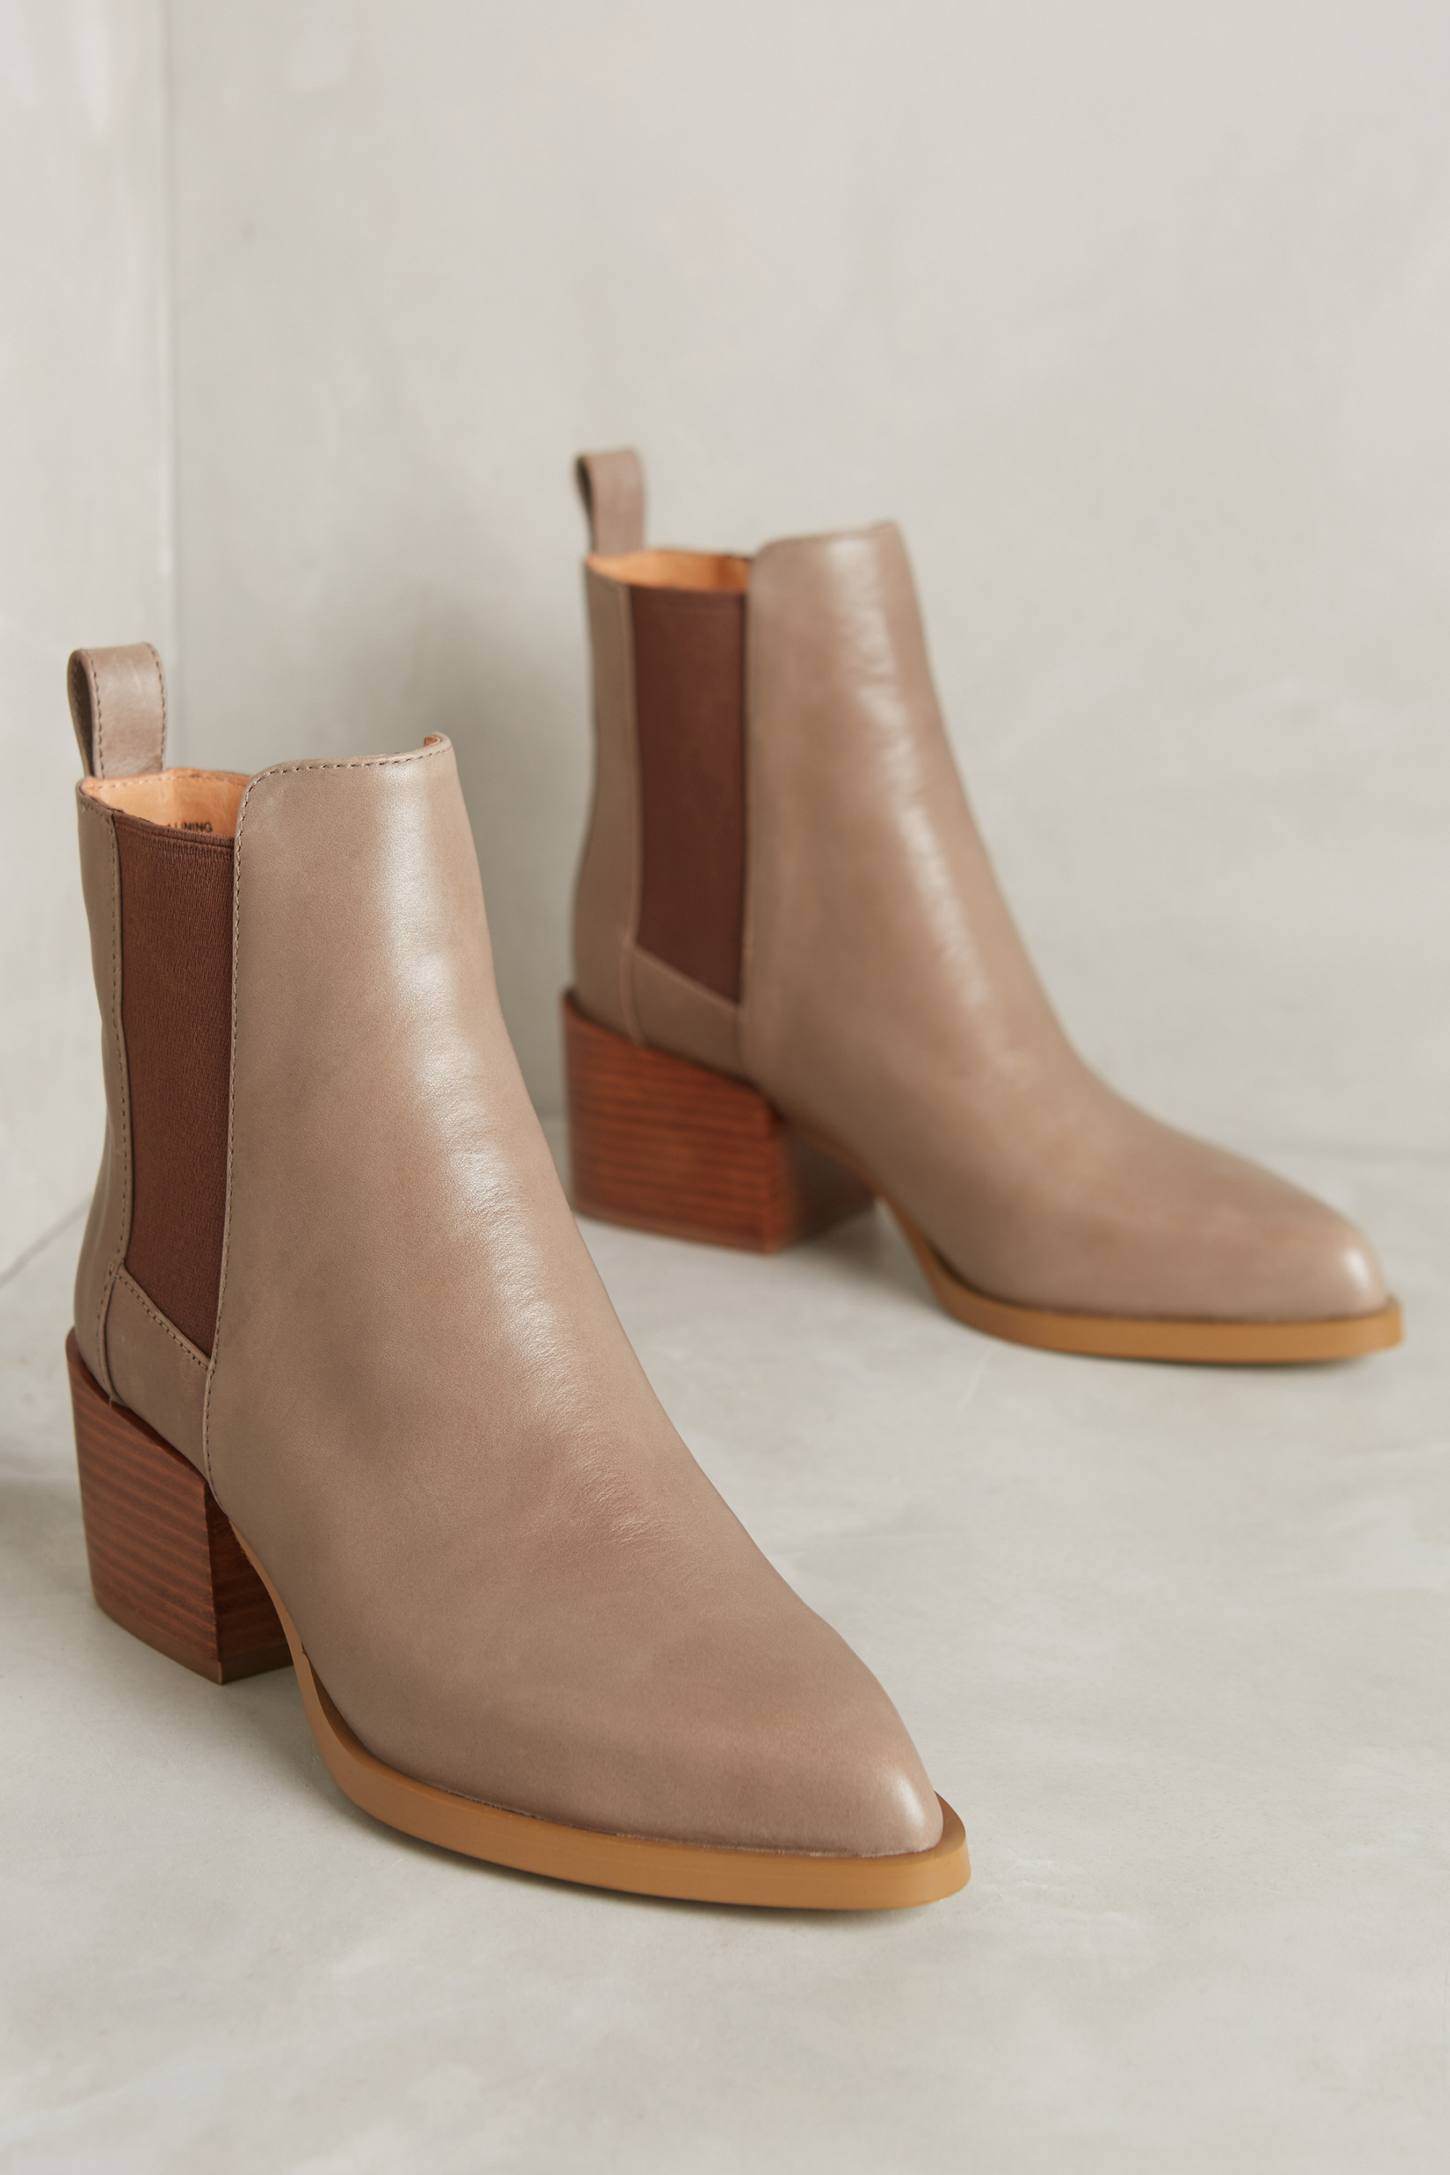 Sey by Seychelles Gift Chelsea Boots